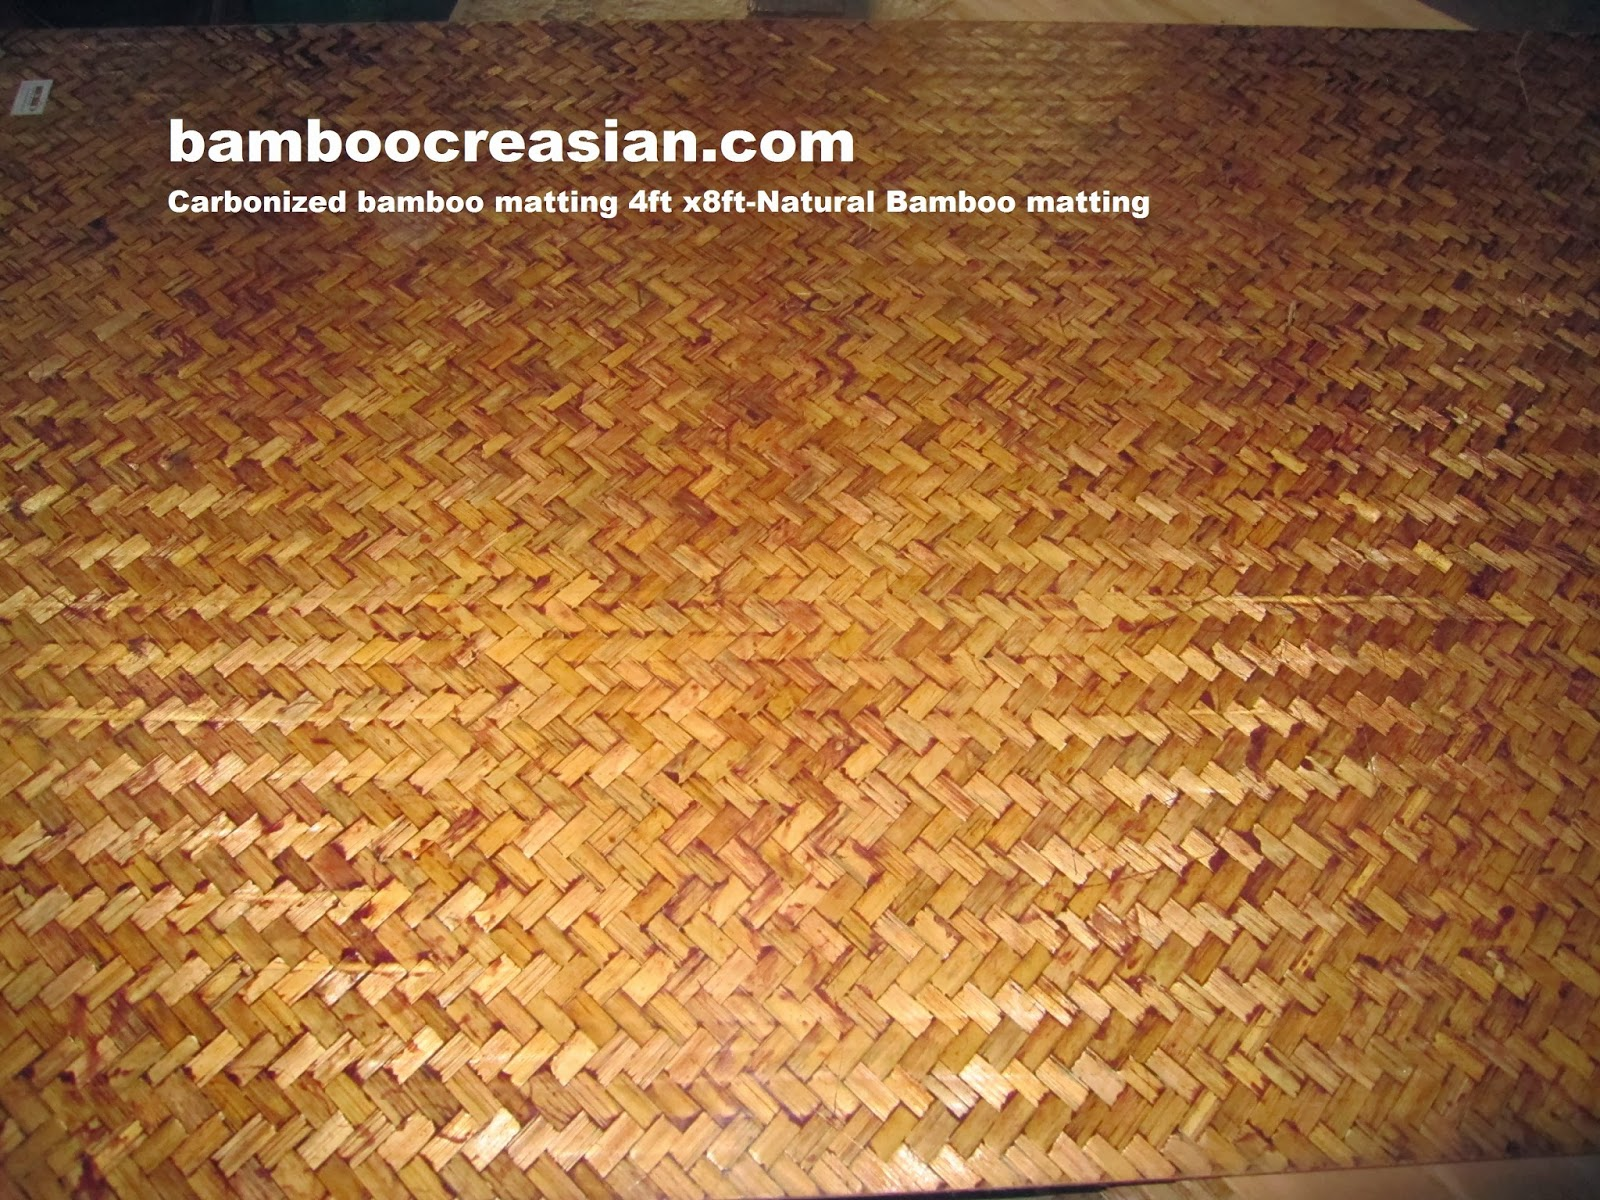 Quality of bamboo thatch in jacksonvilleaflorida a tiki hut quality of bamboo thatch in jacksonvilleaflorida a tiki hutdwellingan exotic tiki beach bar buy bamboo polesfor fencing tiki huts florida bamboo dailygadgetfo Images